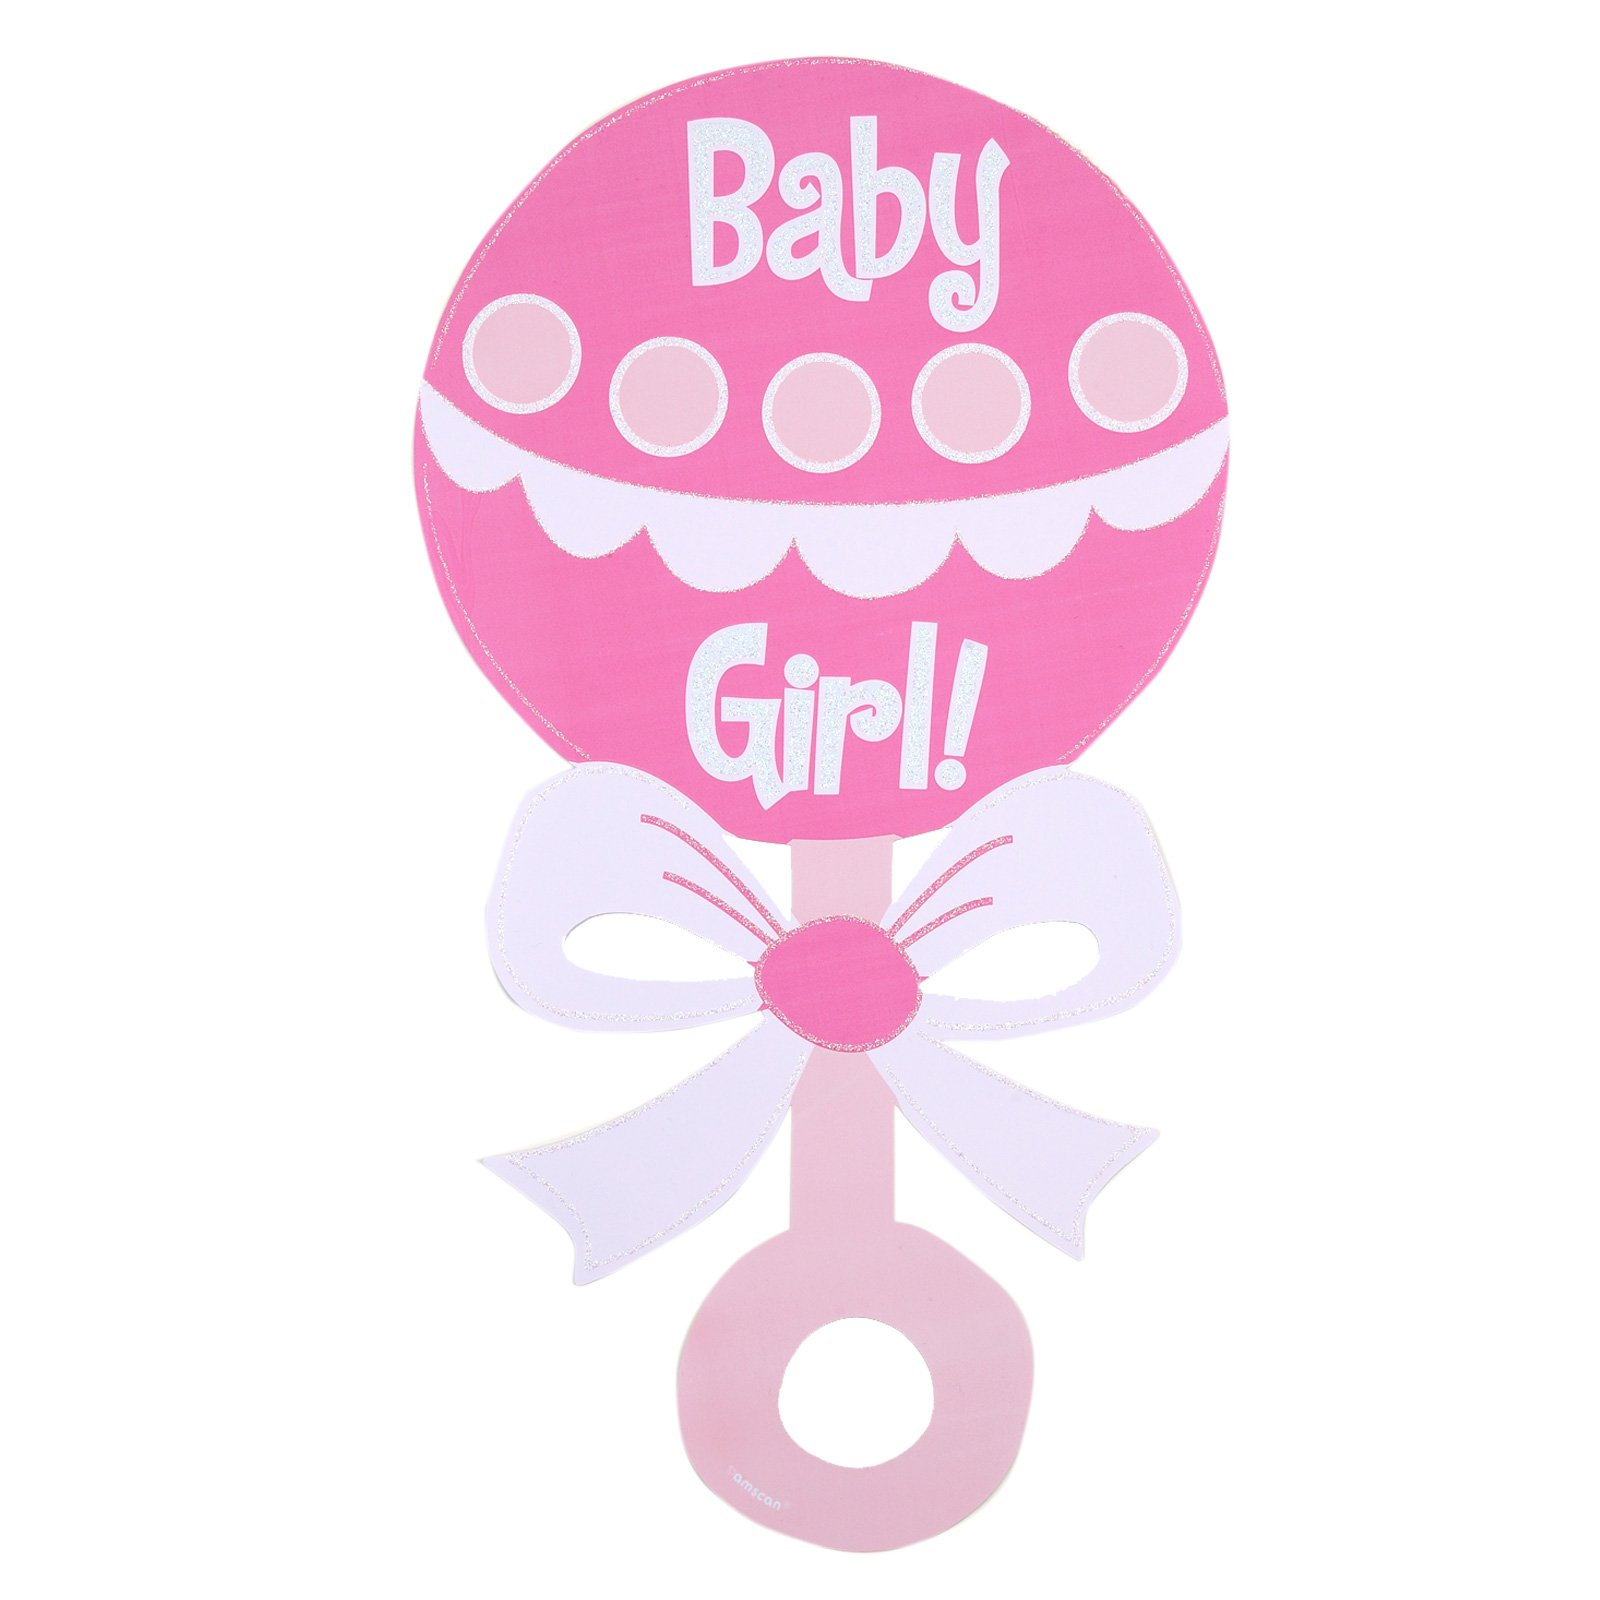 Free clipart clipartfest on. Baby shower girl clip art